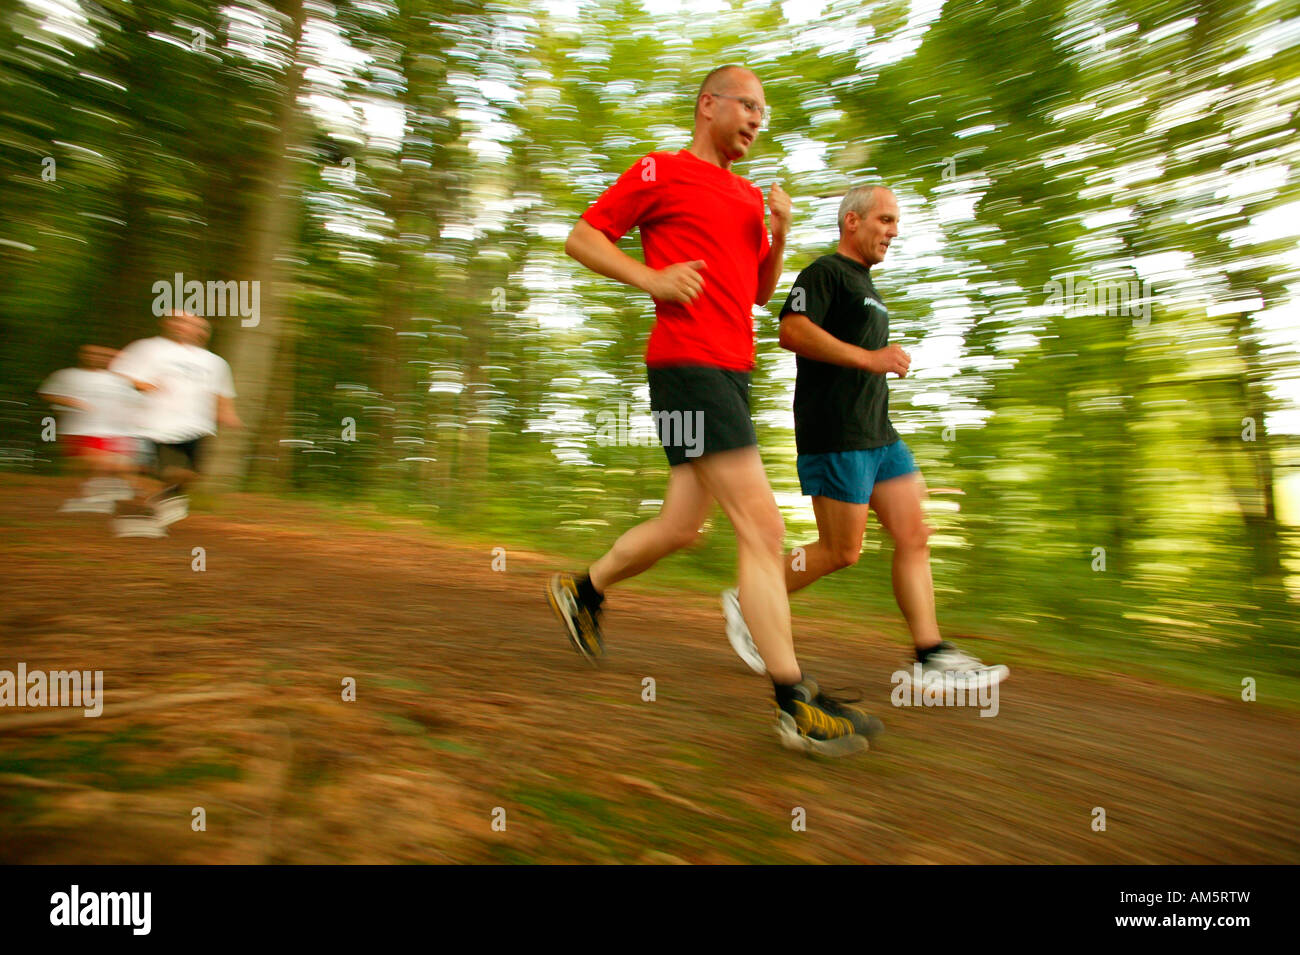 Runners in the forest - Stock Image